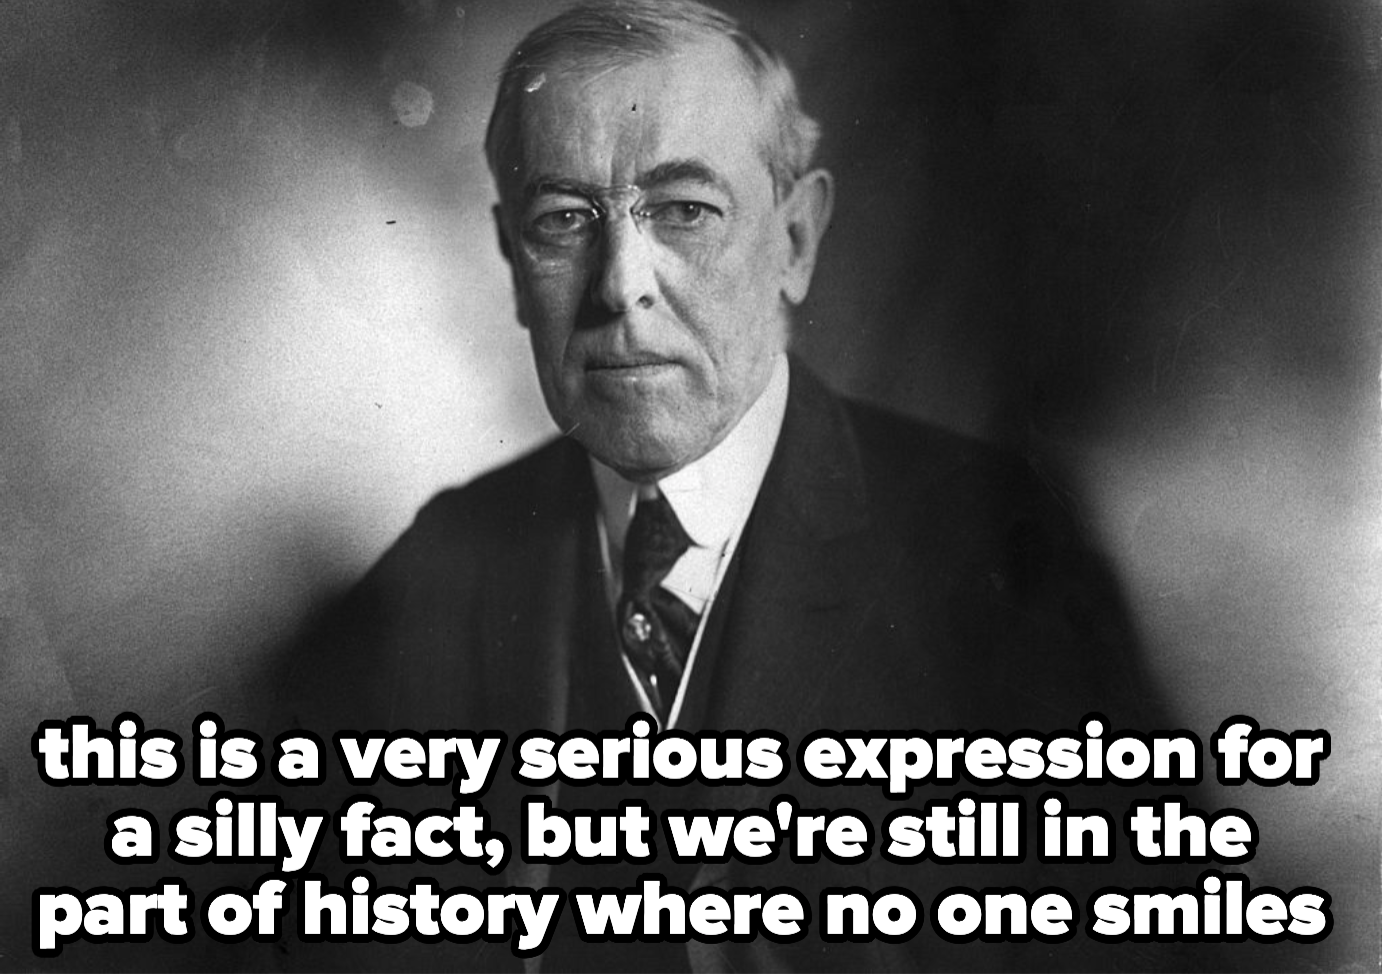 Woodrow Wilson, looking very serious, because we're still in the part of history where no one smiles